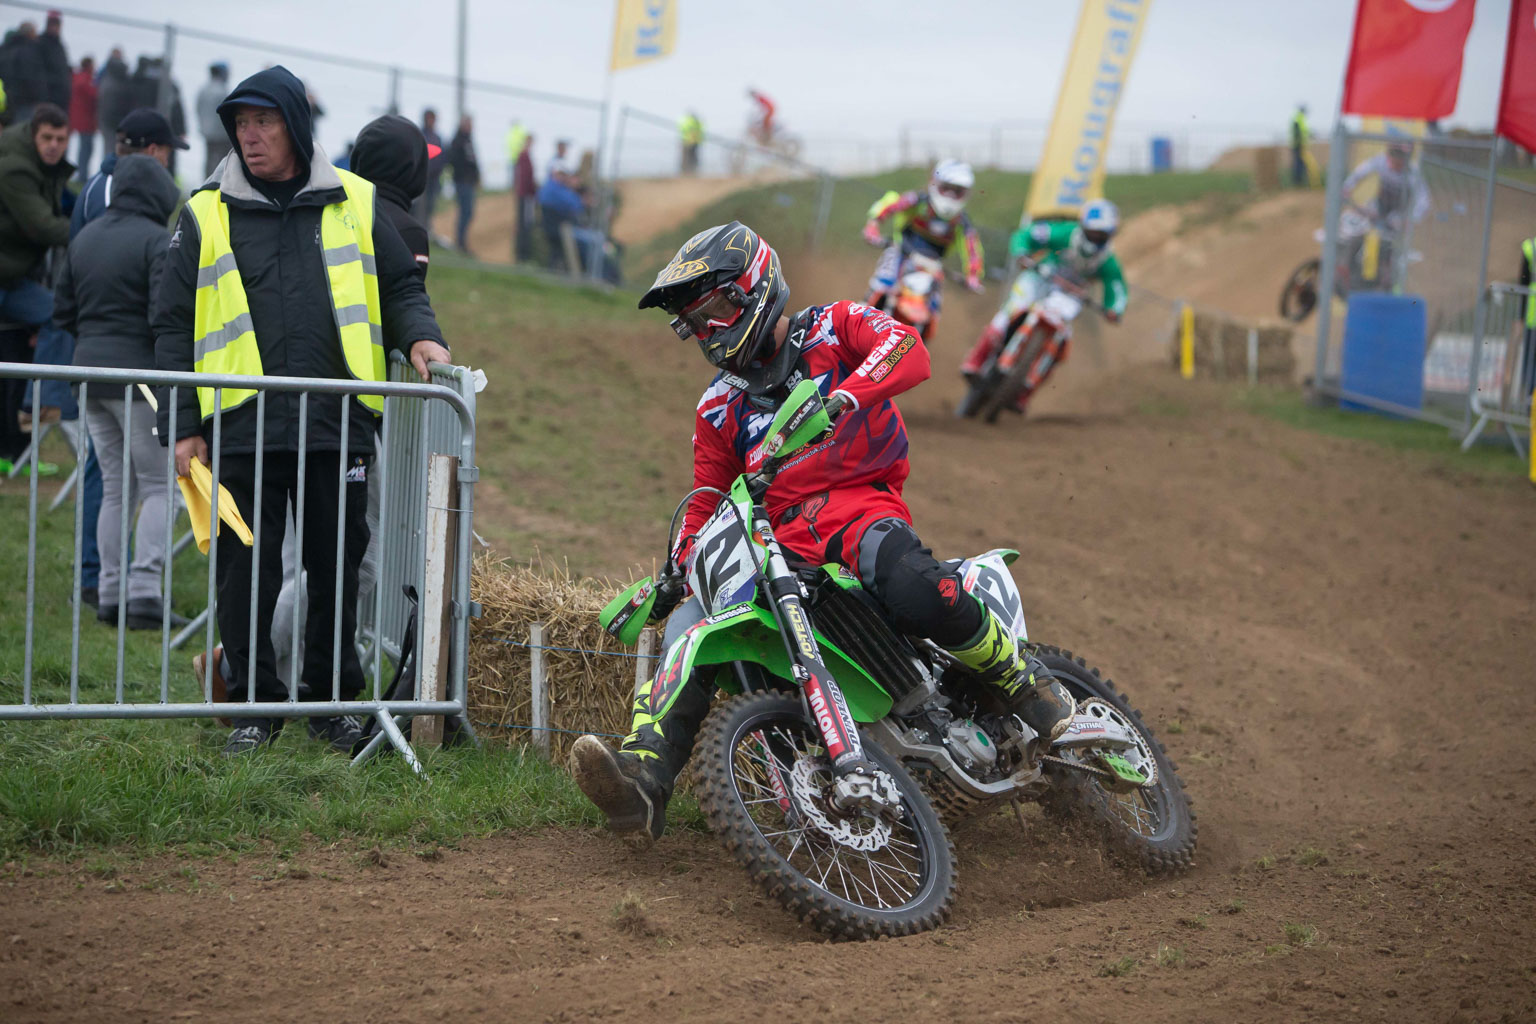 Liam Knight is riding well